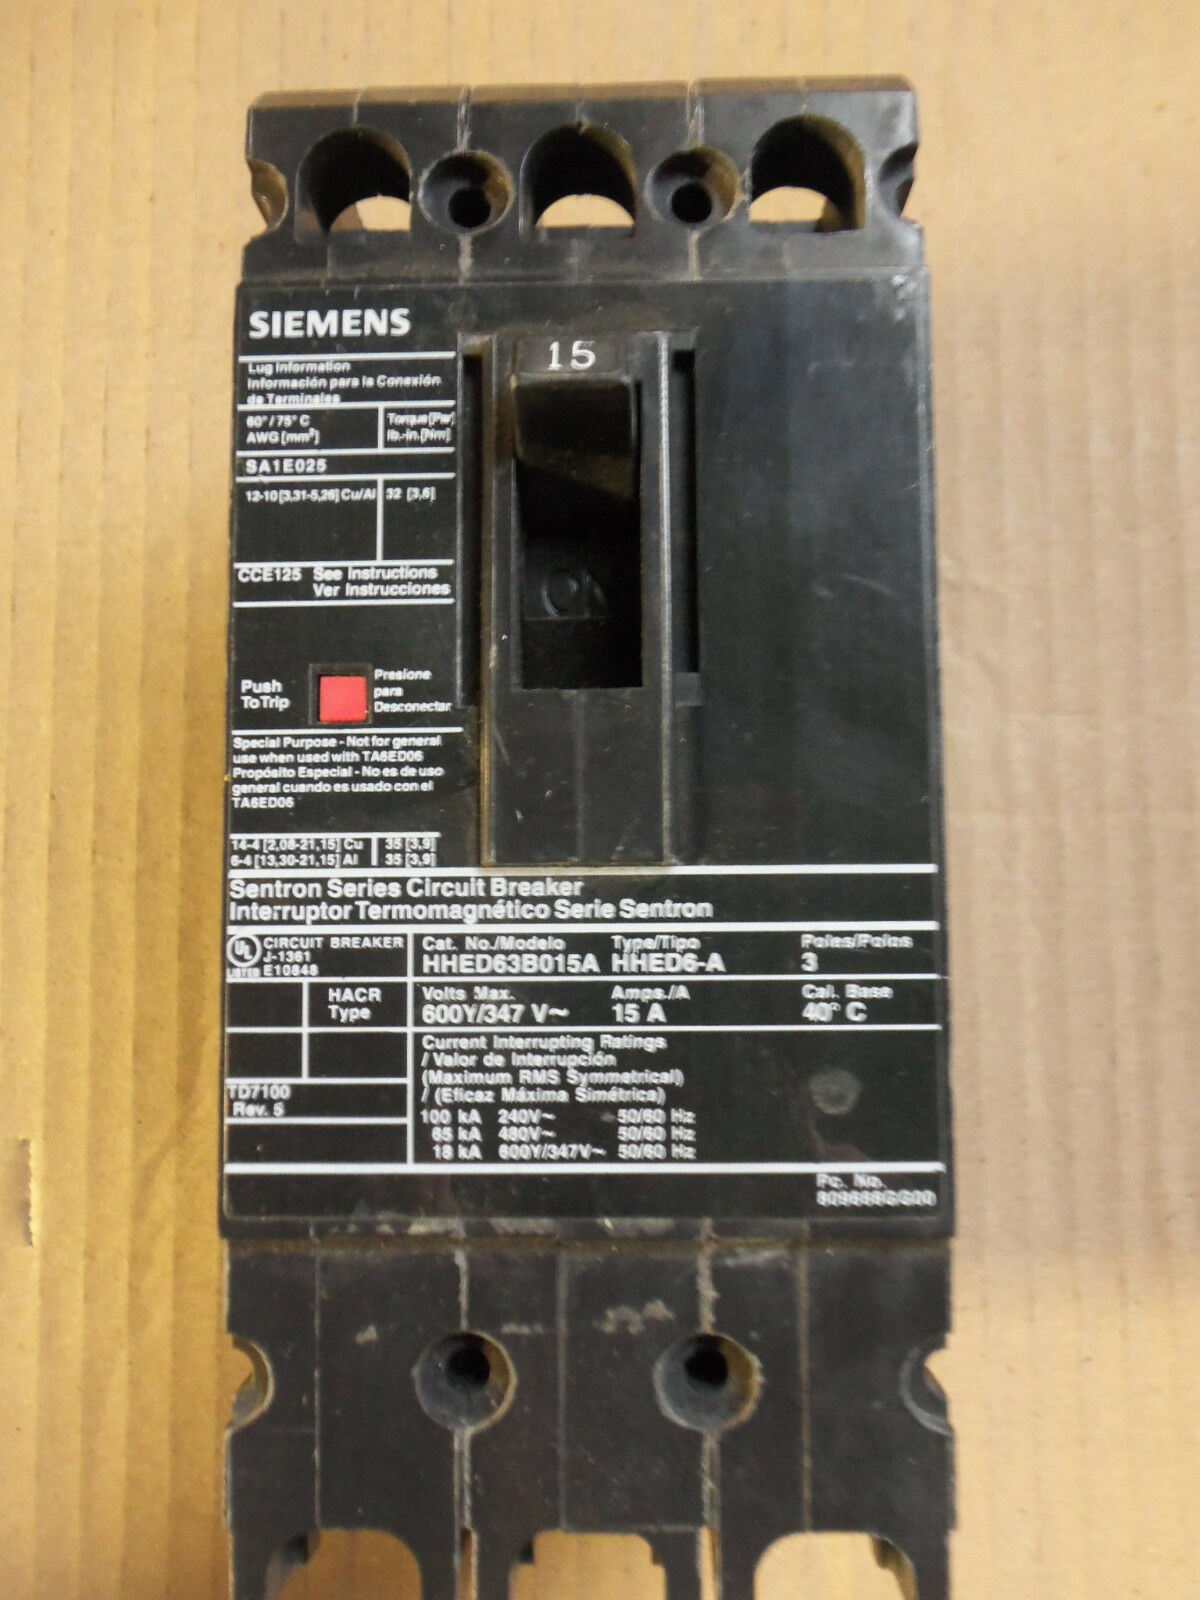 SIEMENS HHED6 HHED63B015A 3 Pole 600V 15 Amp Circuit Breaker HHED ...